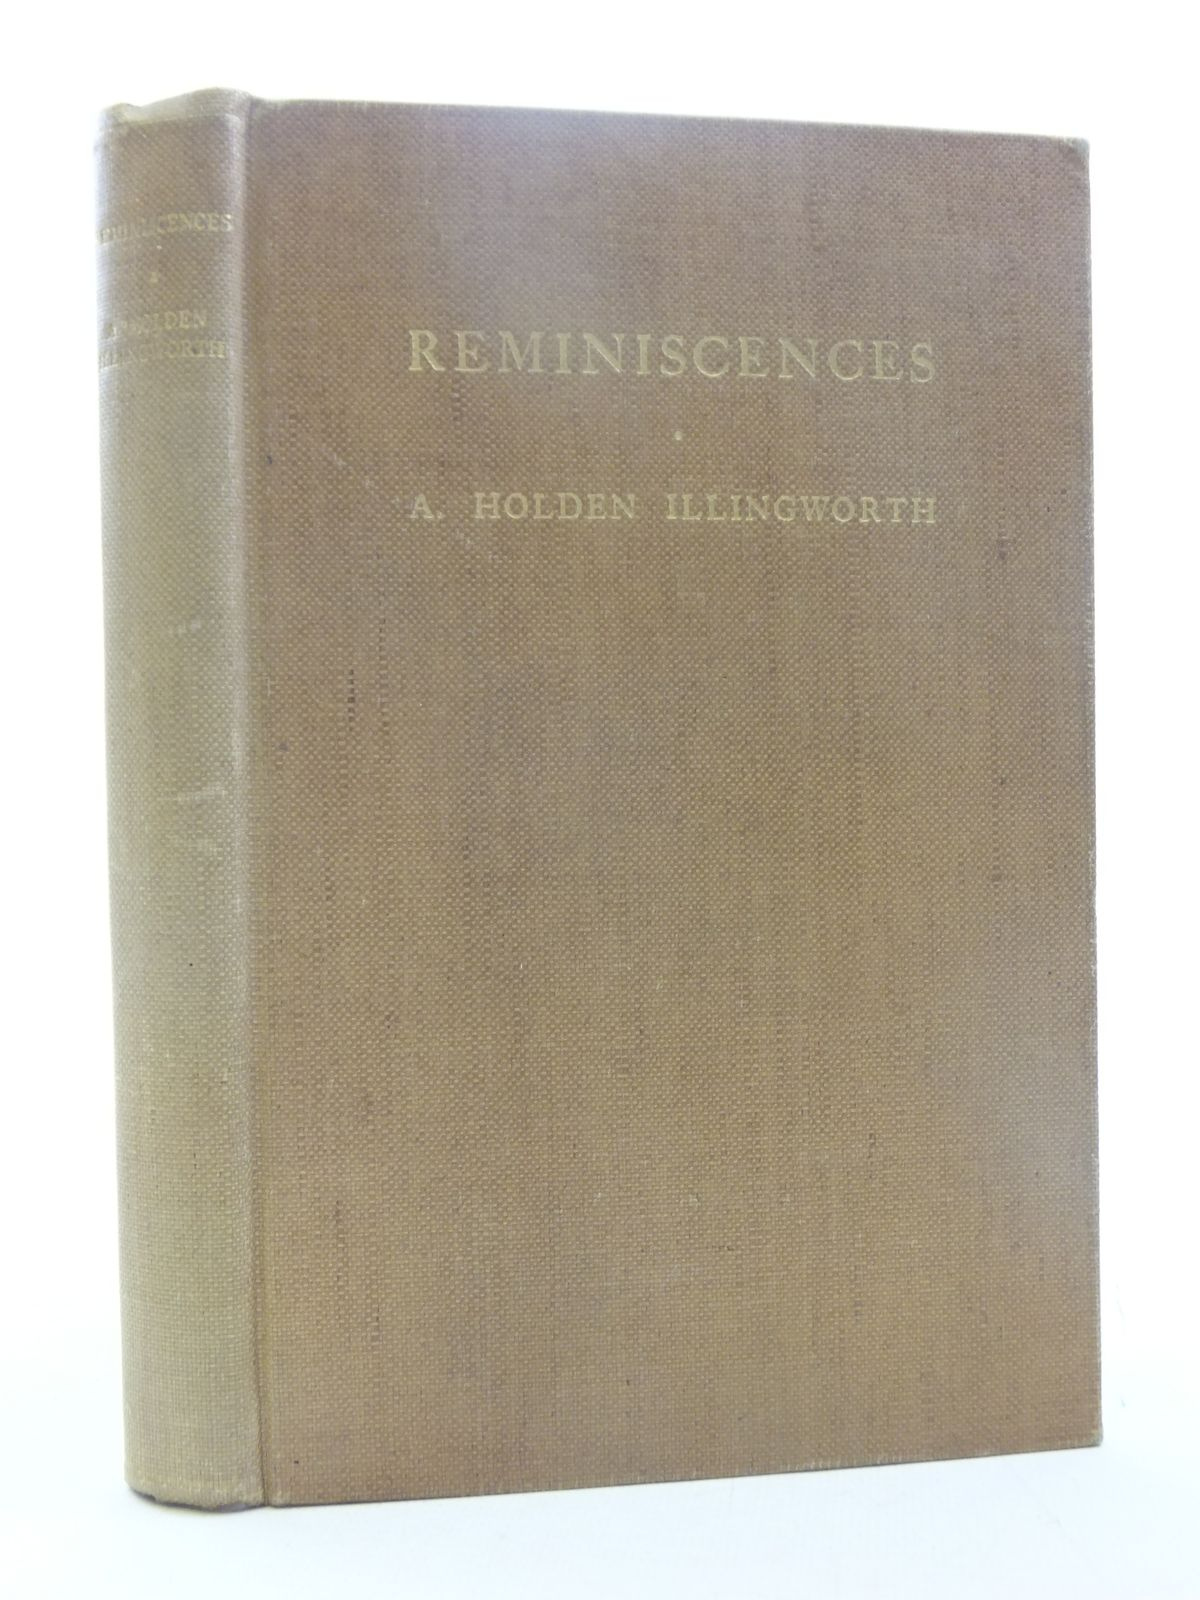 Photo of REMINISCENCES written by Illingworth, A. Holden published by Percy Lund, Humphries & Co. Ltd. (STOCK CODE: 2118007)  for sale by Stella & Rose's Books